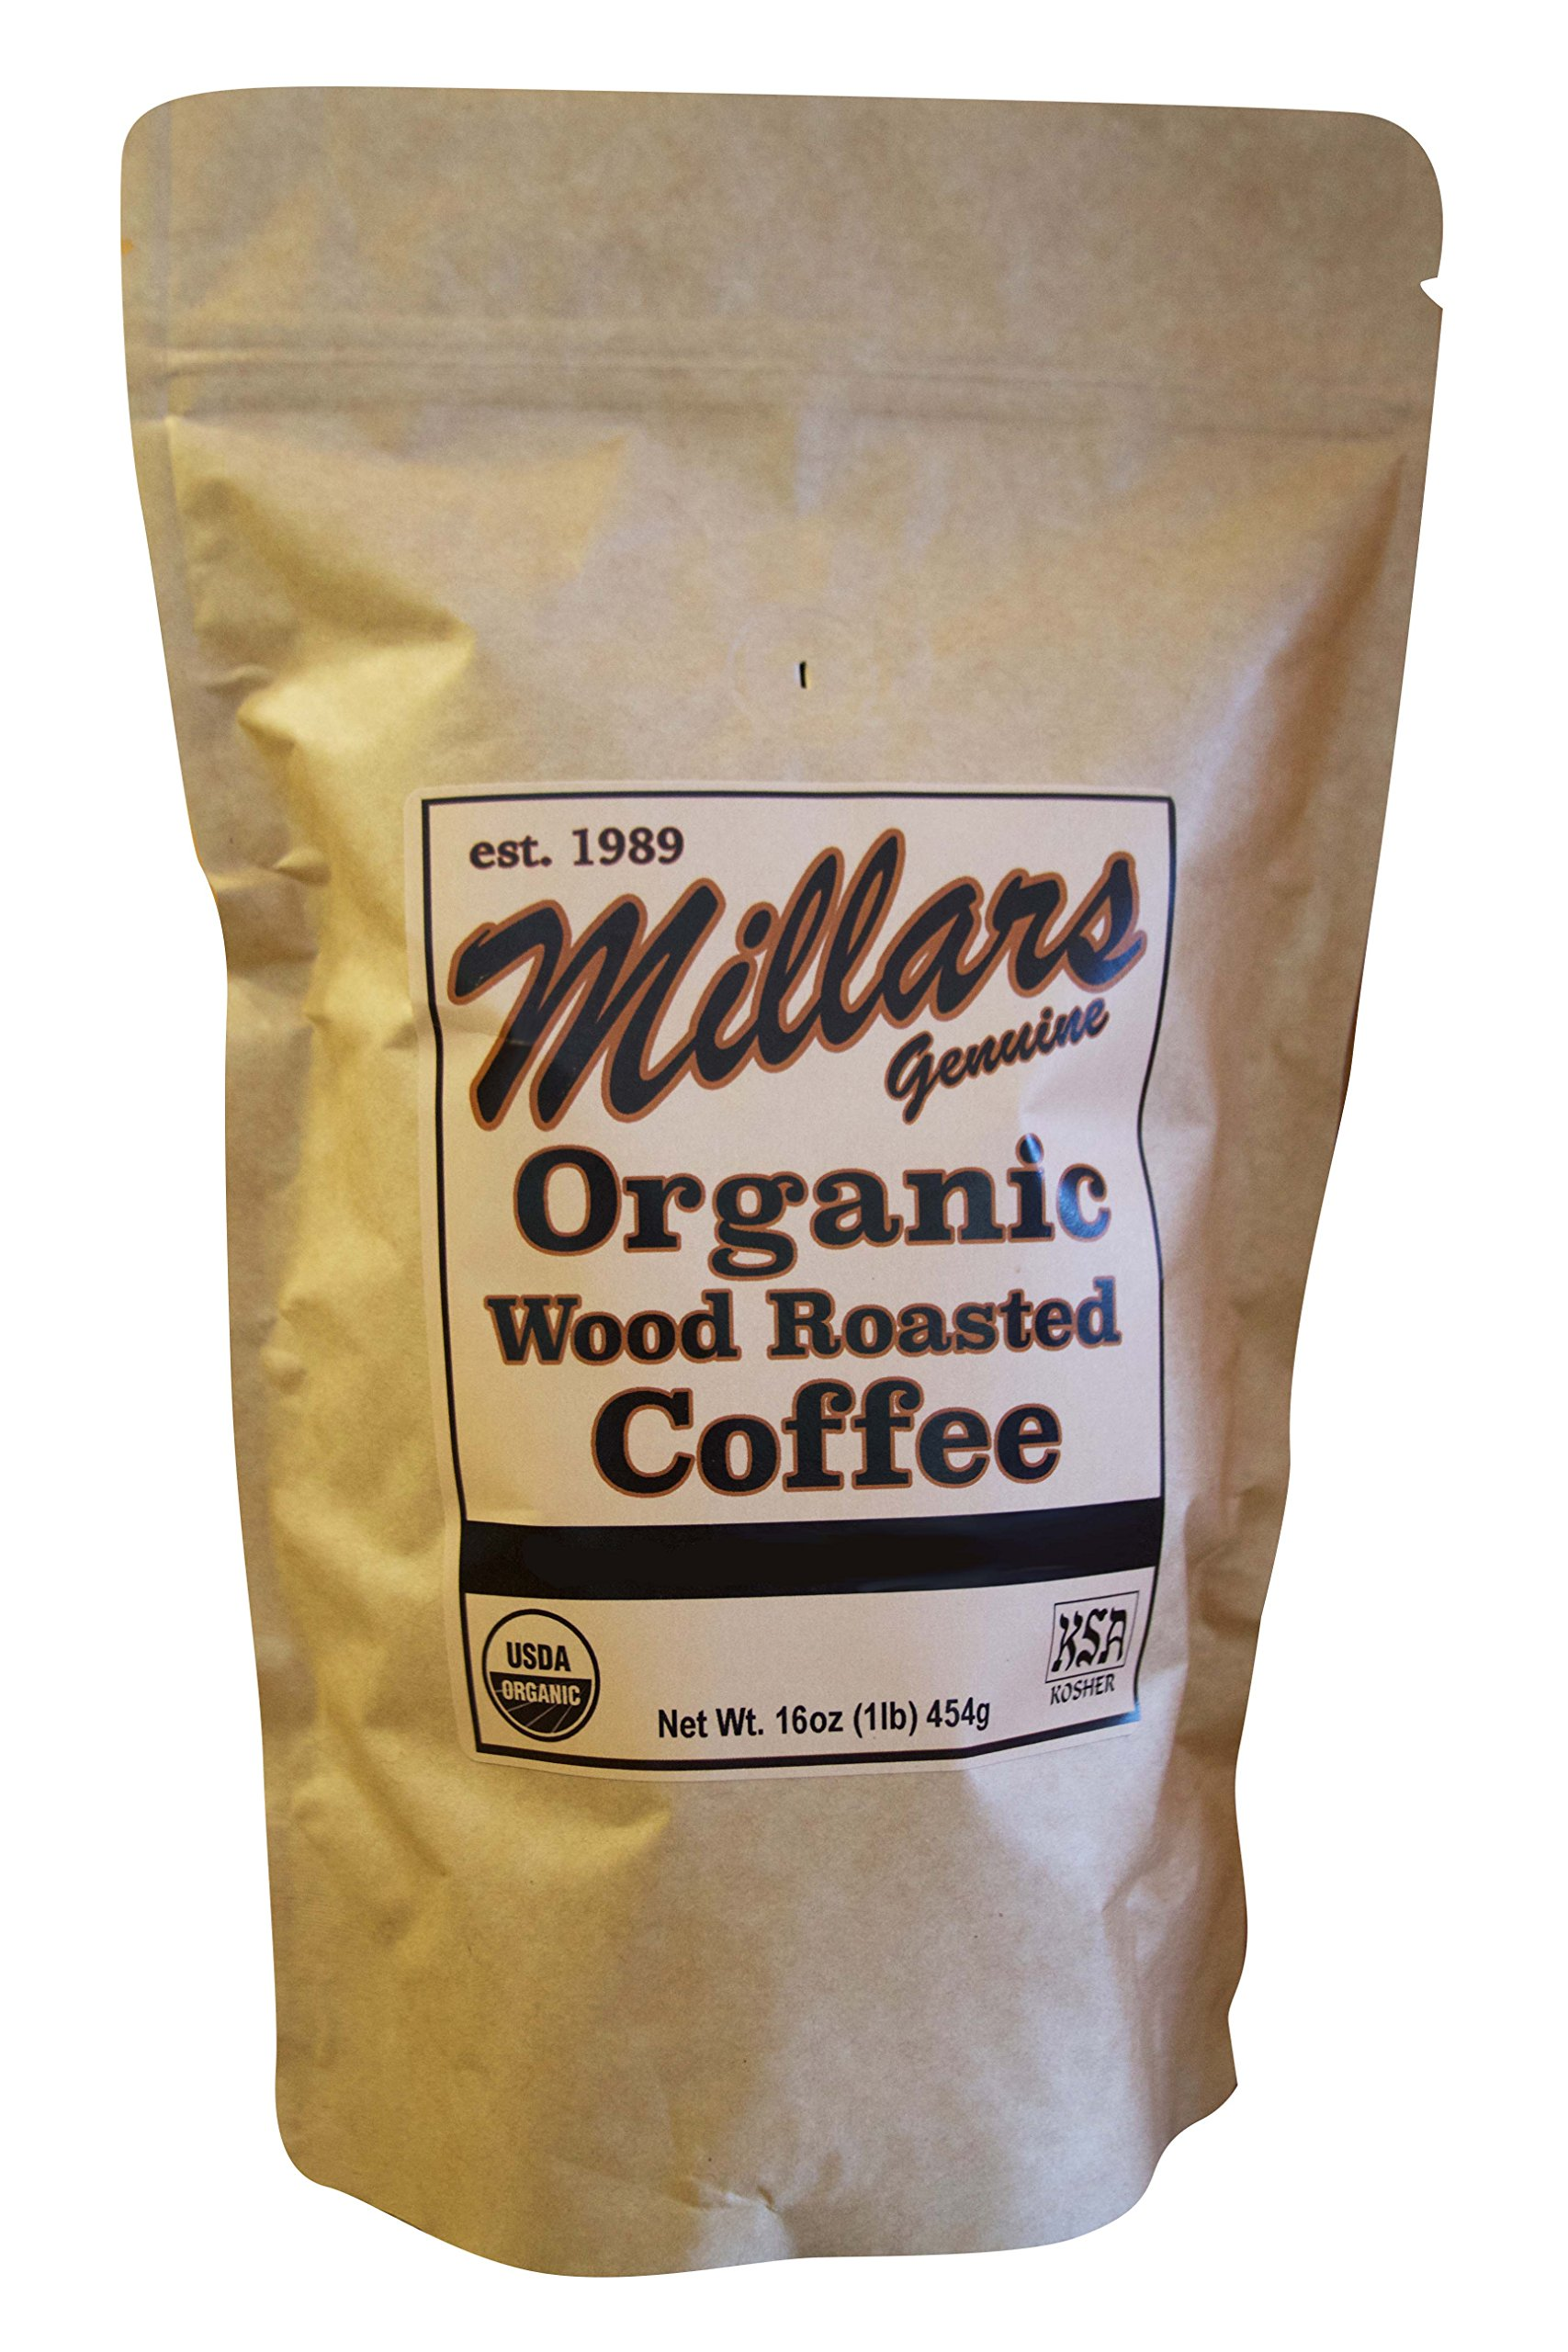 Millar's Wood Roasted Organic Espresso & Drip Coffee Sunset Blend Medium 16 ounce Bag by Millar's Wood Roasted Coffee (Image #1)